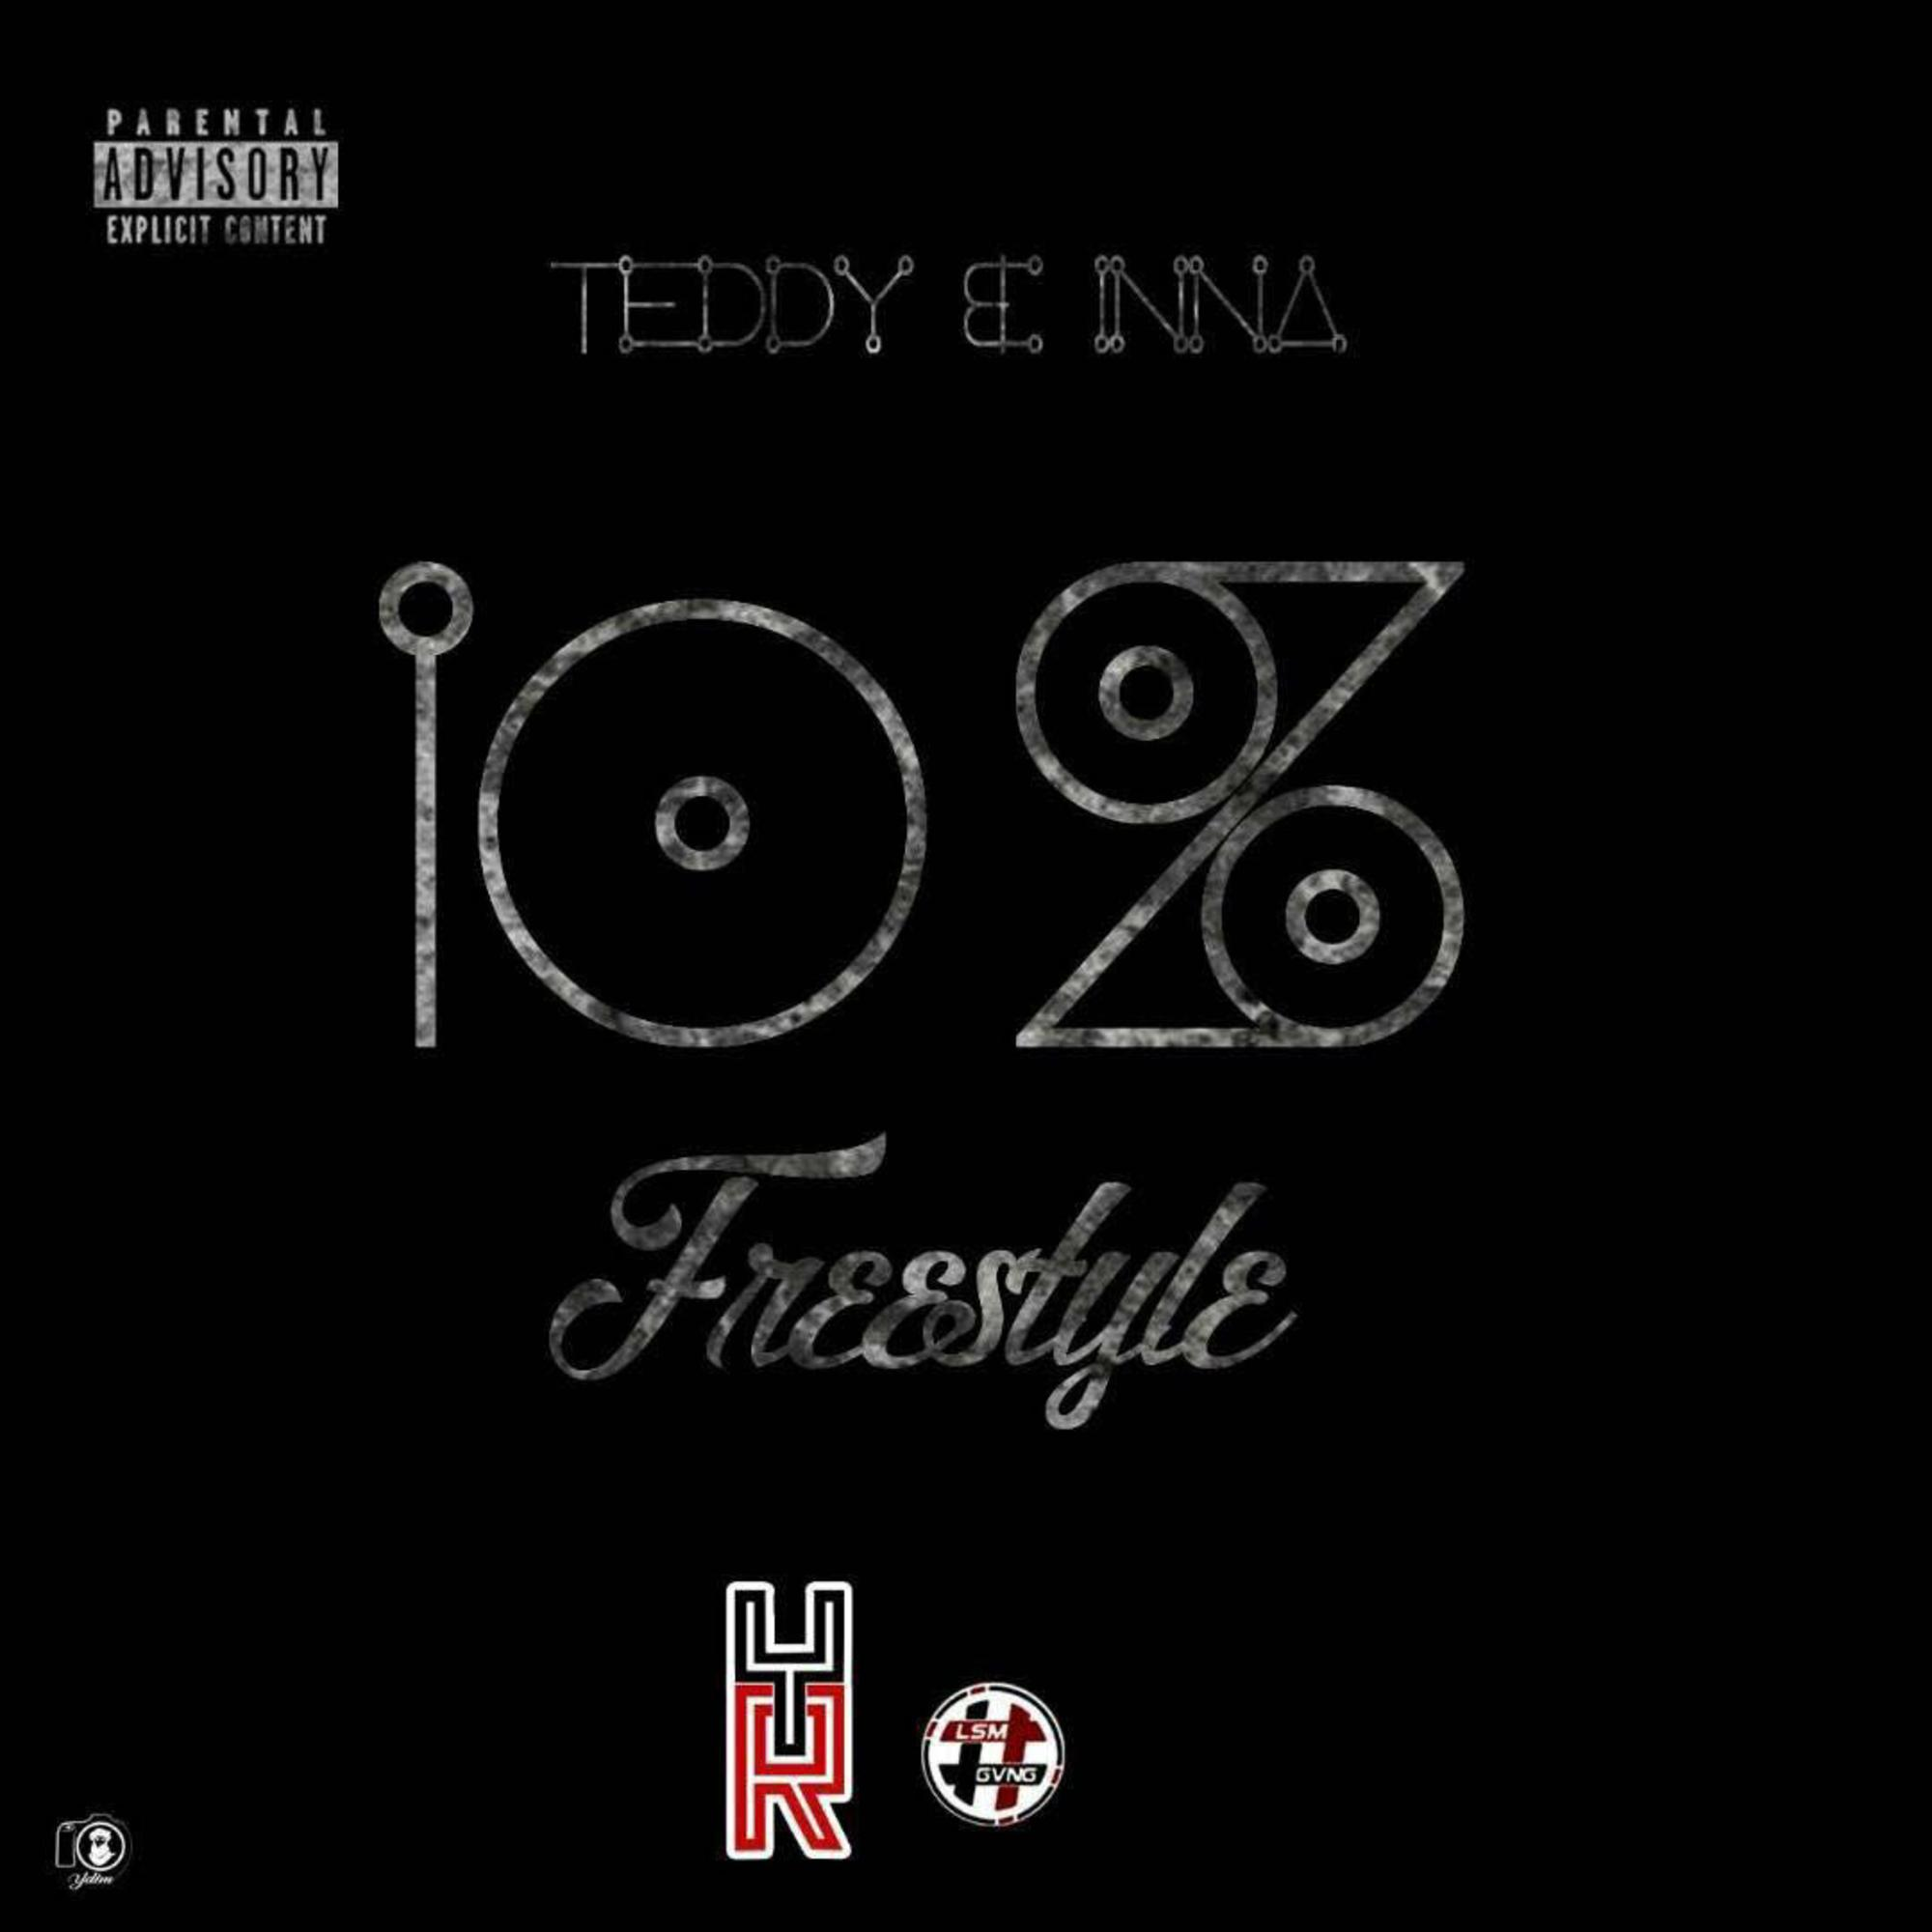 10% Freestyle